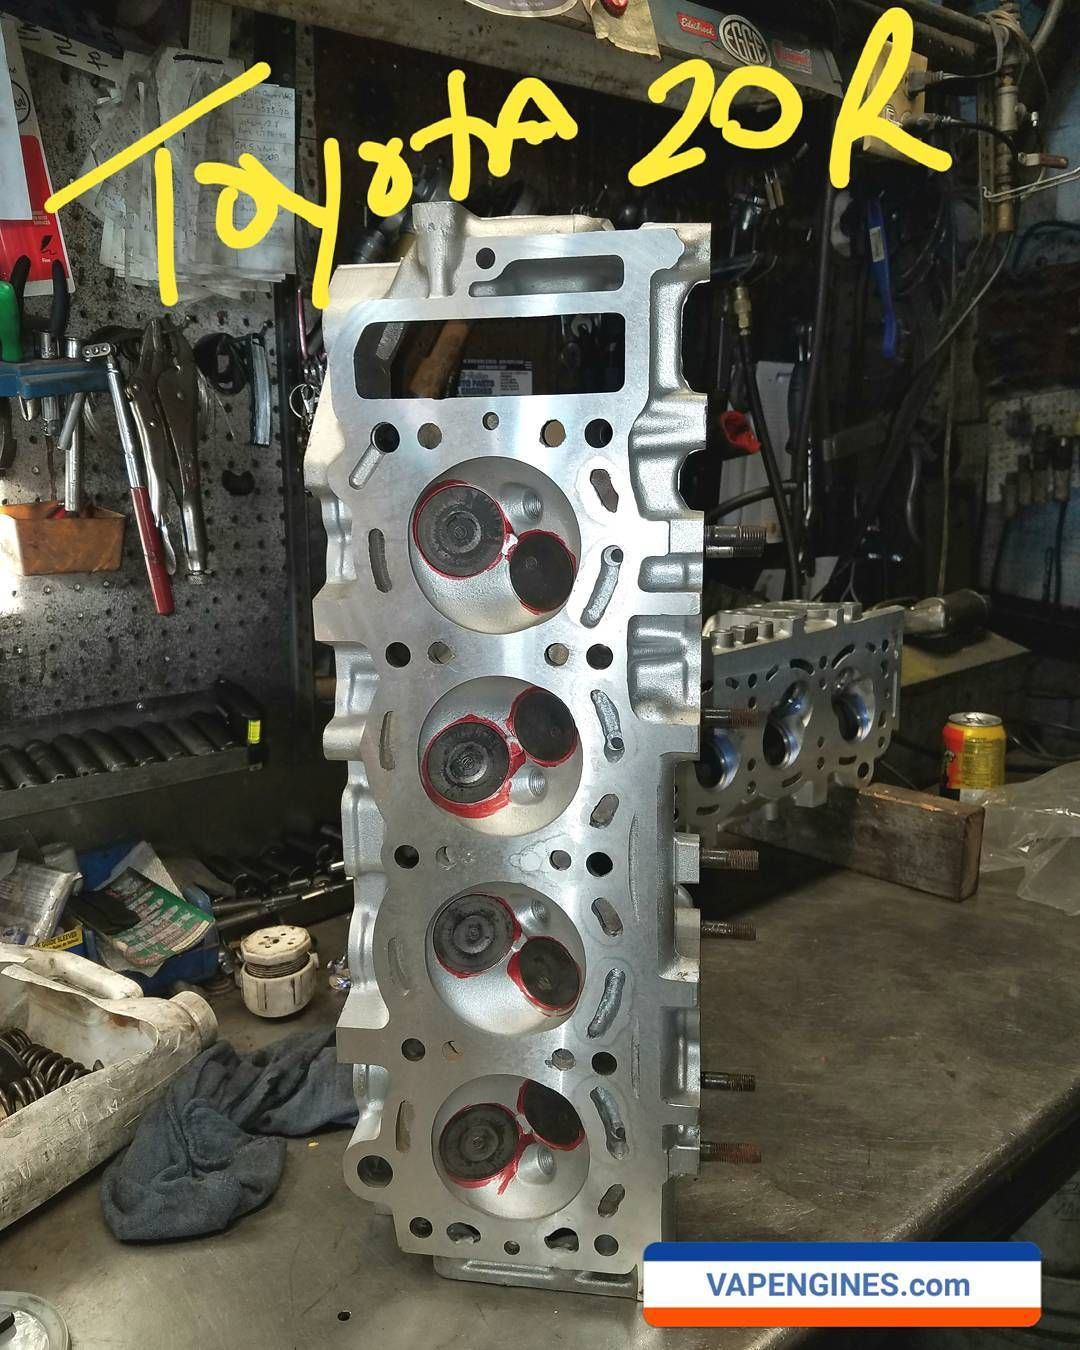 Toyota 20r Remanufactured Cylinder Head Toyota20r Valvejob Enginerebuildautoshop Enginebuilder Losangelesmachinesho In 2020 Machine Shop Car Shop Engine Rebuild